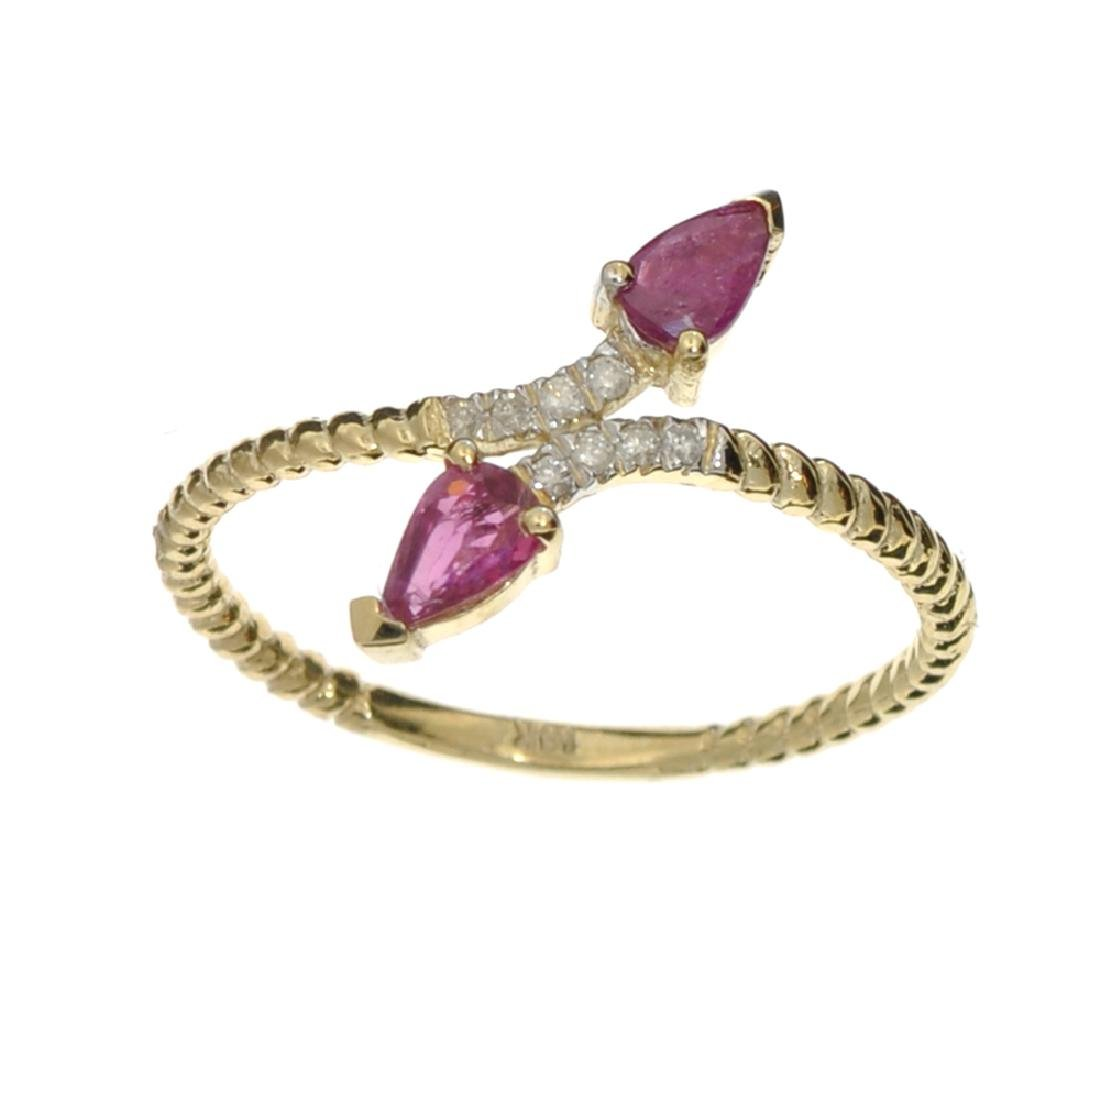 APP: 0.8k Fine Jewelry 14 KT Gold, 0.53CT Ruby And